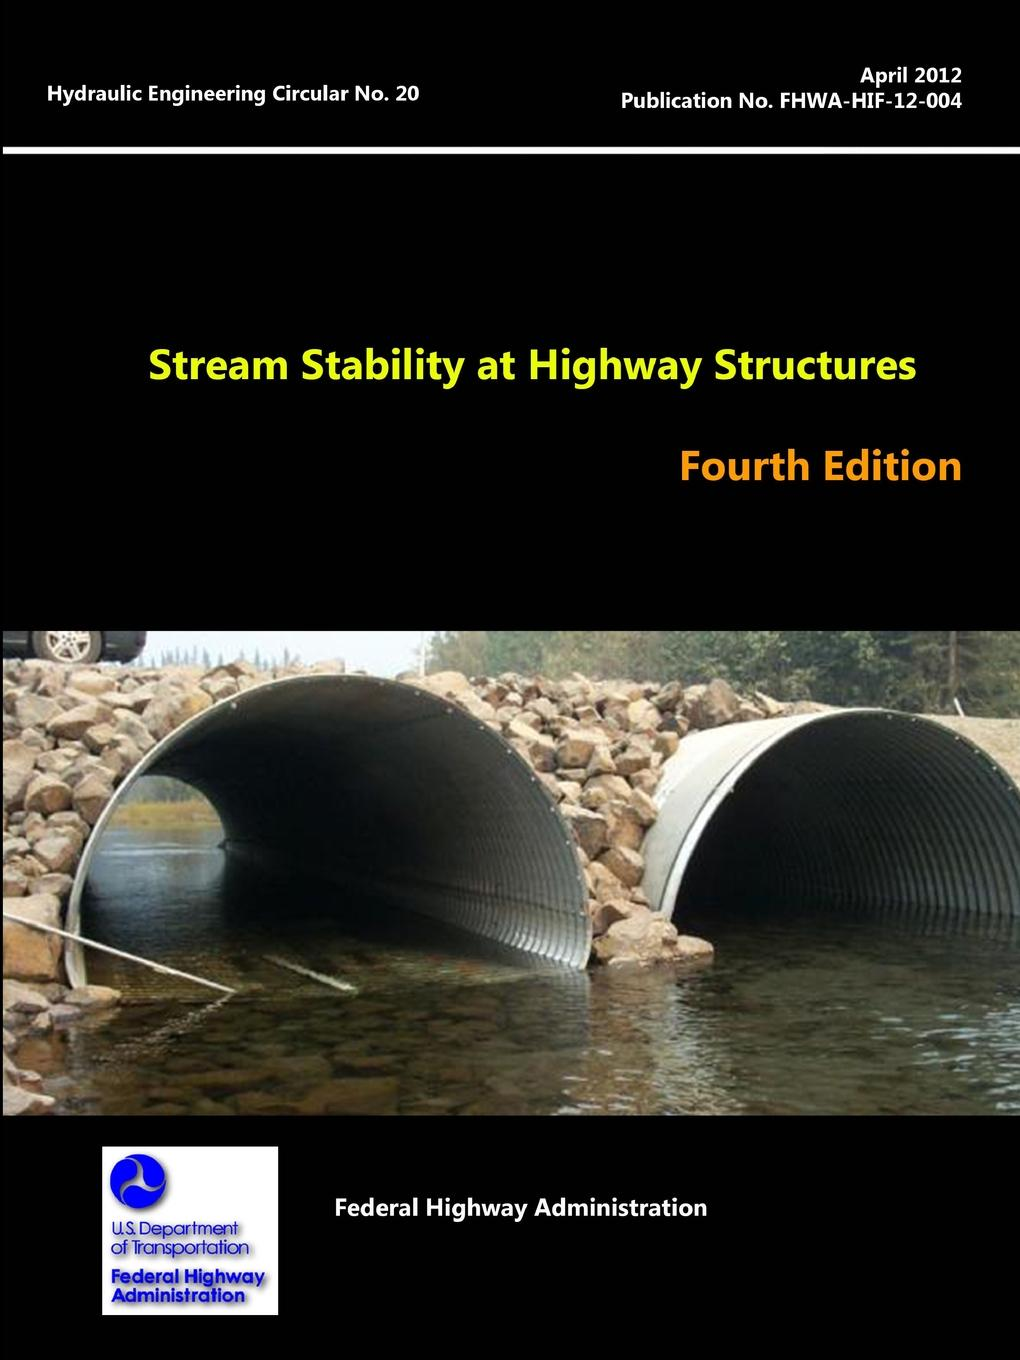 U.S. Department of Transportation Stream Stability at Highway Structures - Fourth Edition (Hydraulic Engineering Circular No. 20) tool for enhancement of protein stability